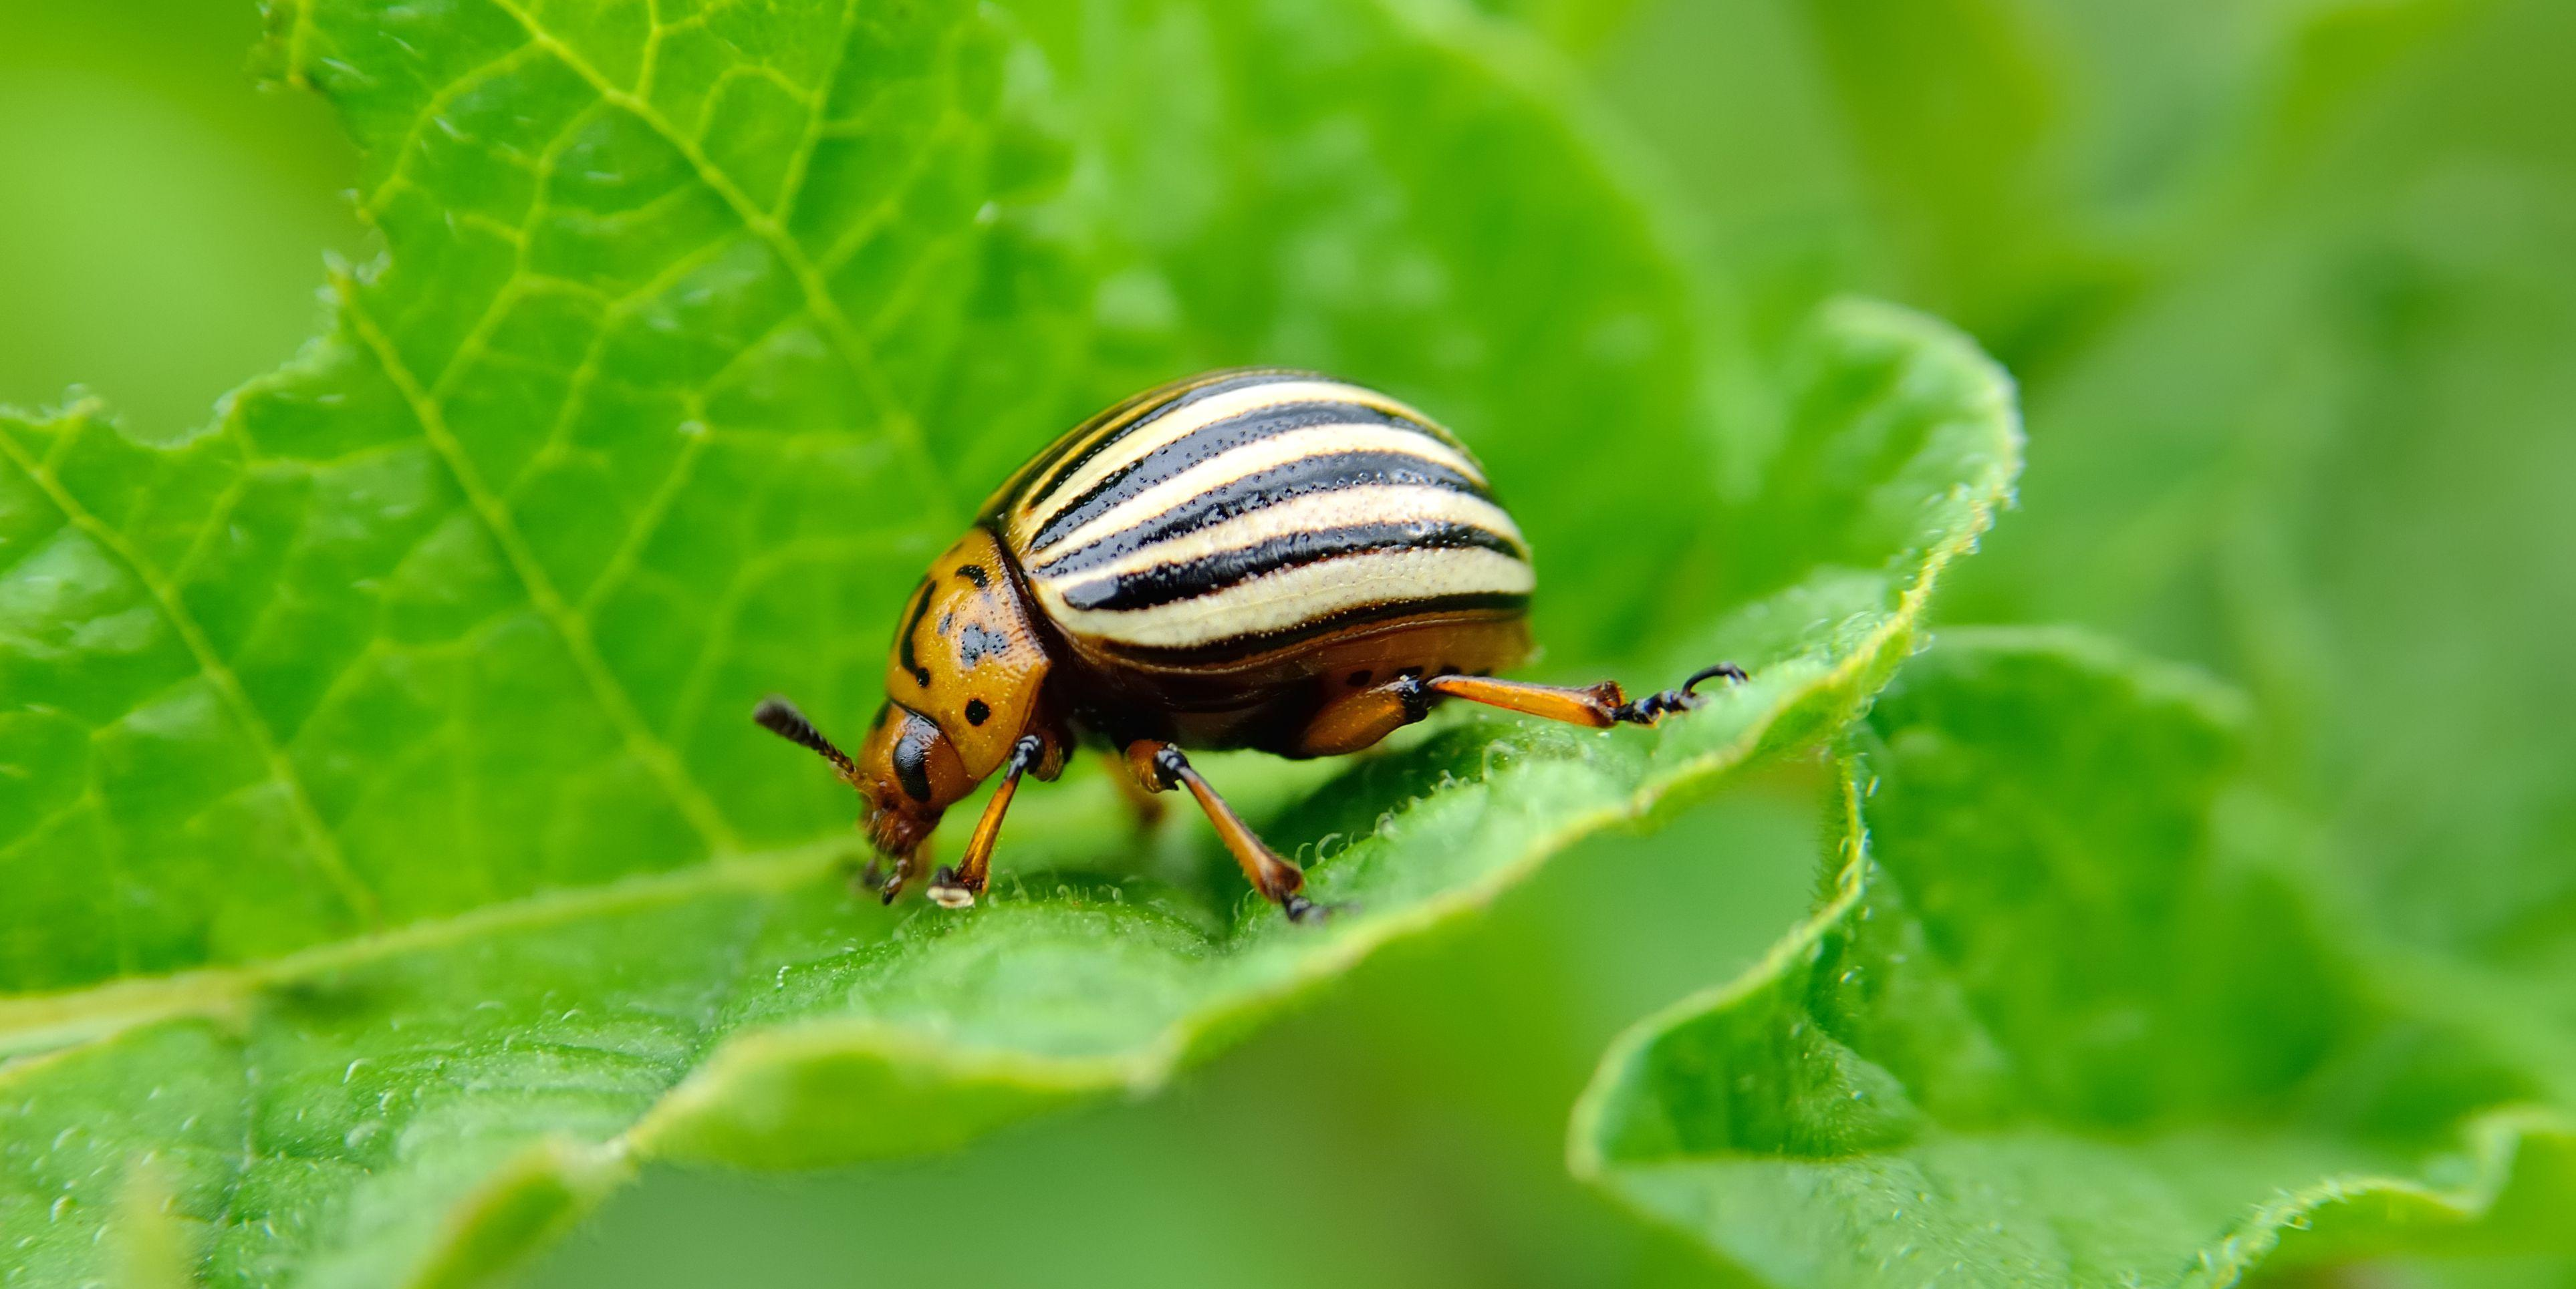 Stop Pests In your home Vegetable Garden With Pure Pesticides